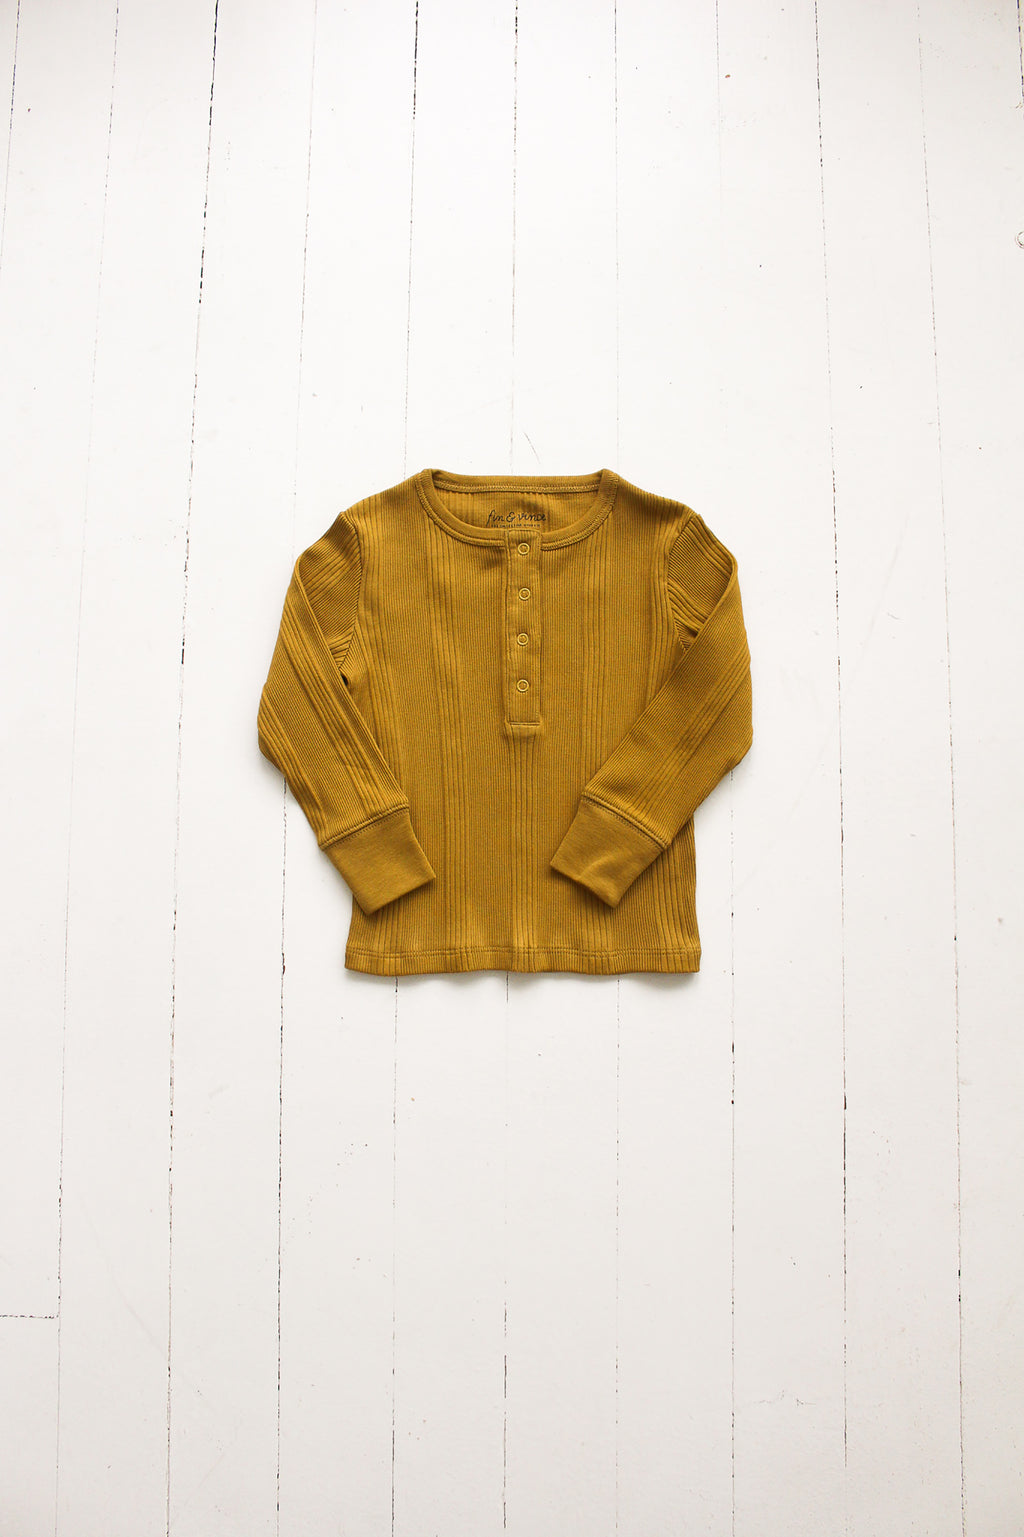 Fin and Vince - Long Sleeve Snap Top (Mustard)